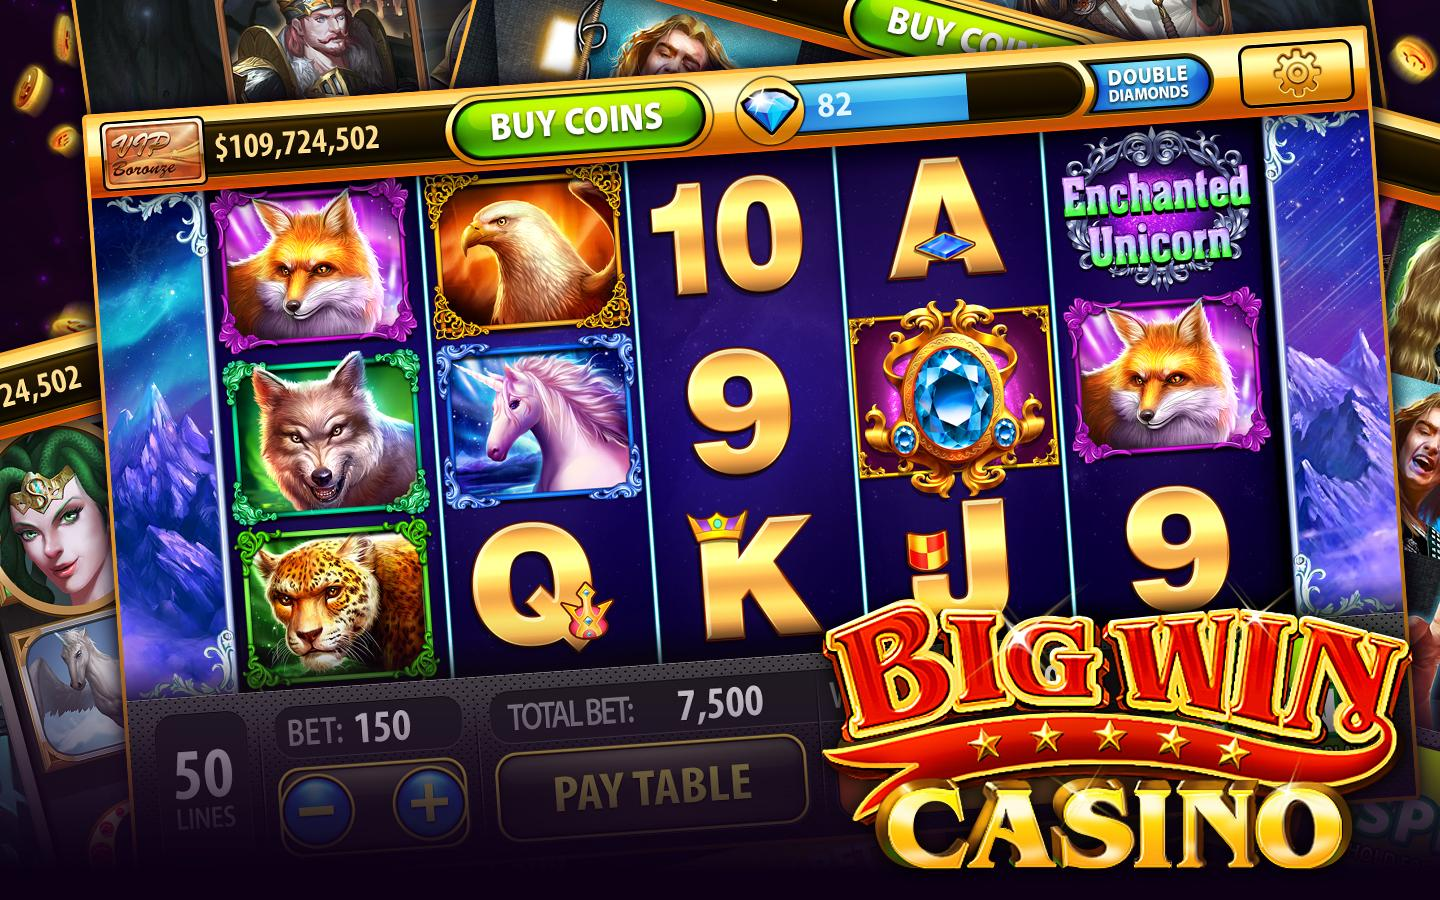 Casino games | Euro Palace Casino Blog - Part 5